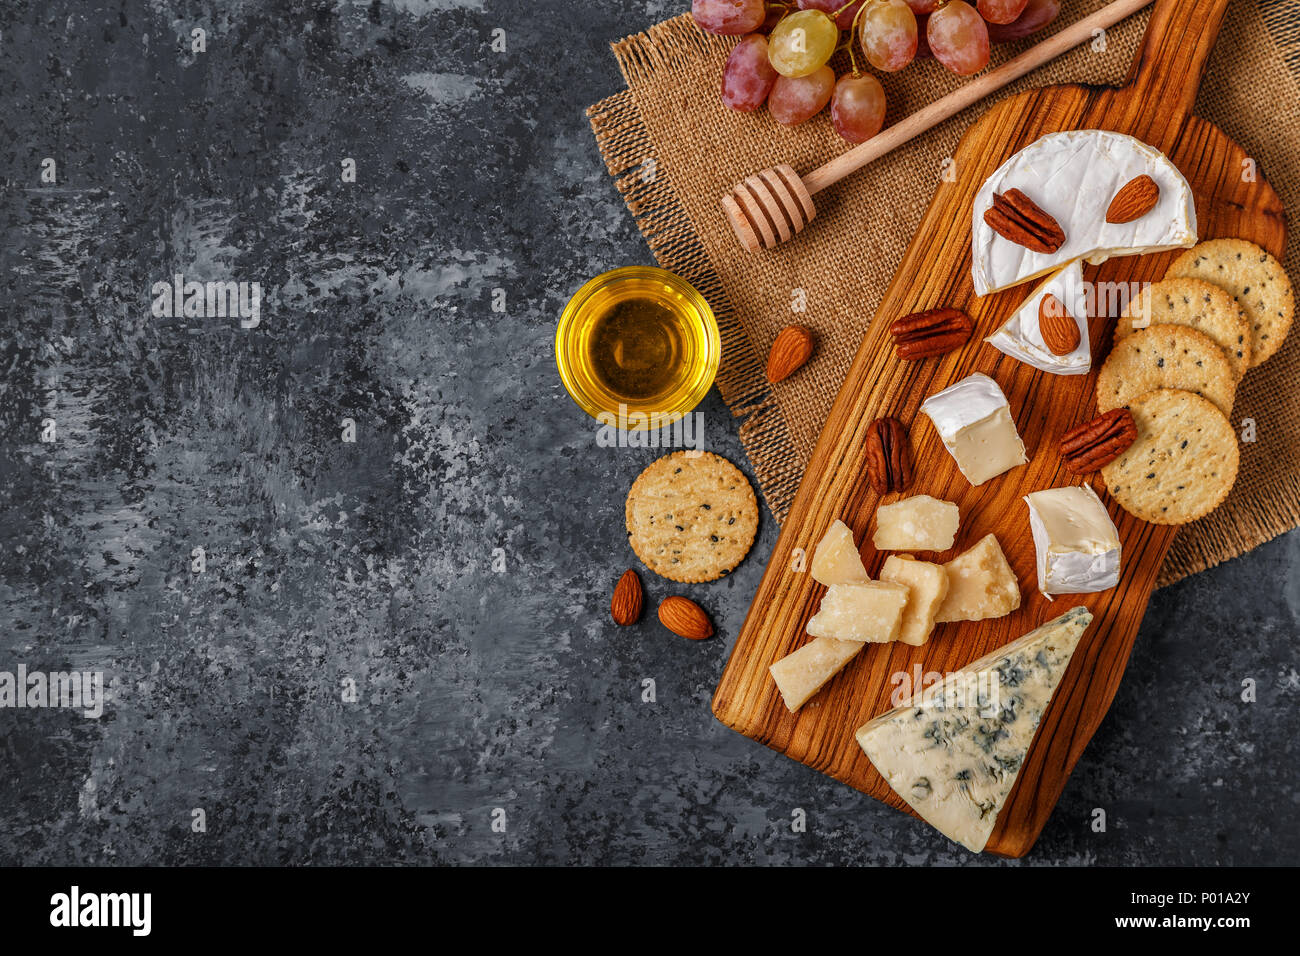 Assortment of cheese with honey, nuts and grape on a cutting board, top view. - Stock Image